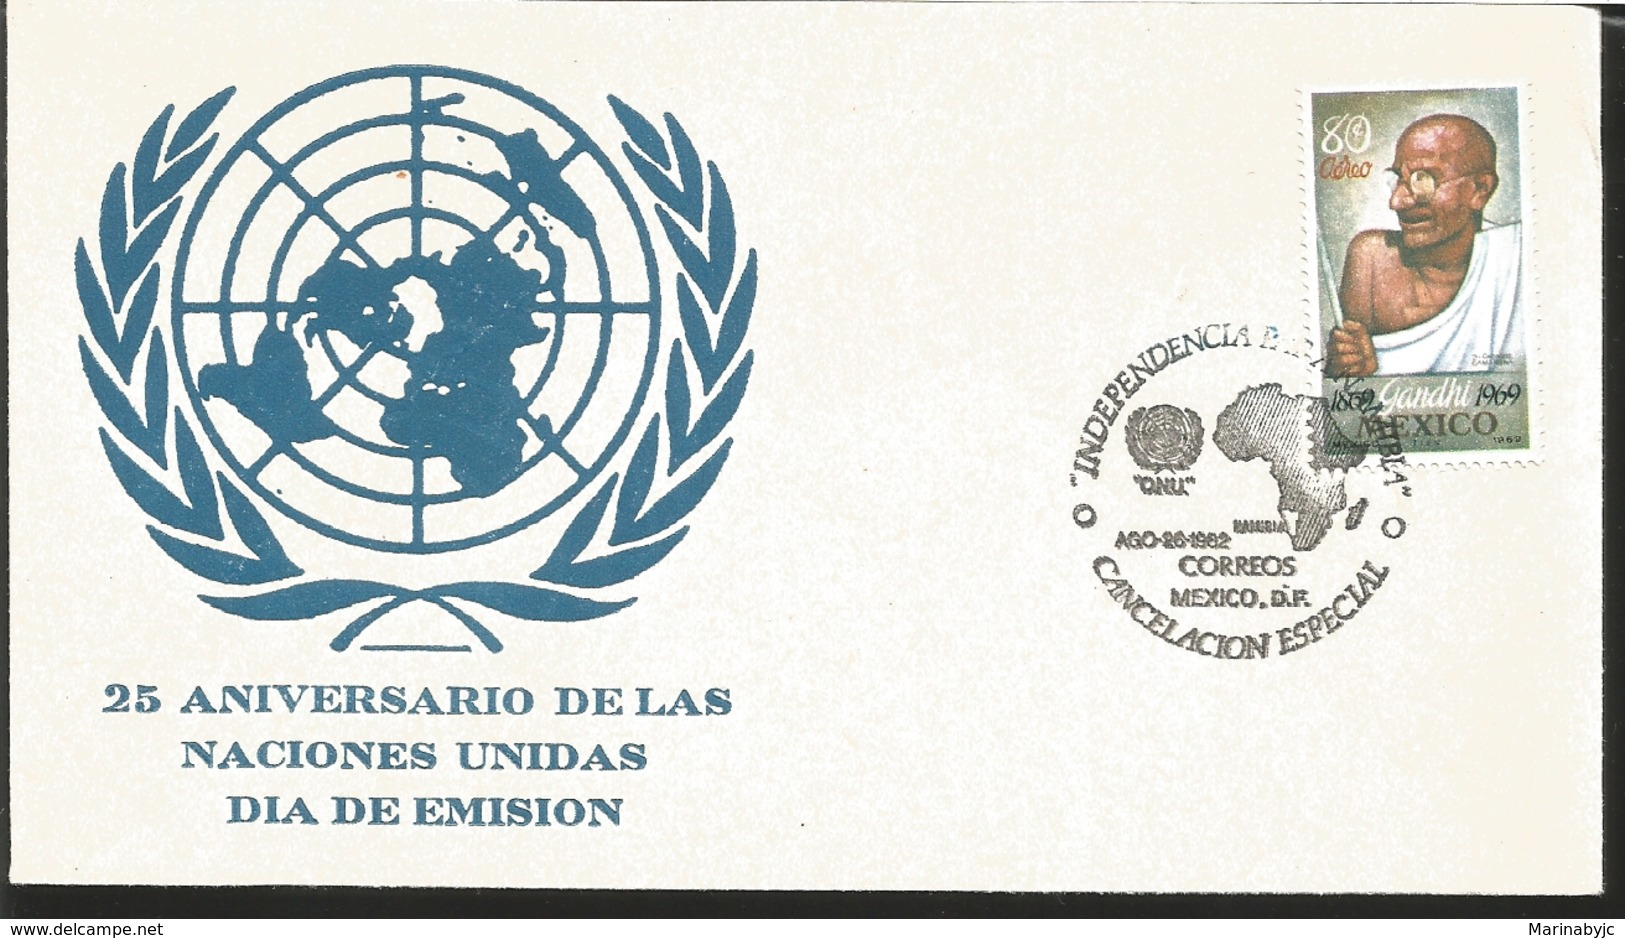 J) 1969 MEXICO, 25TH ANNIVERSARY OF THE UNITED NATIONS, EMBLEM, GANDHI, MAP, SPECIAL CANCELLATION, FDC - Mexico